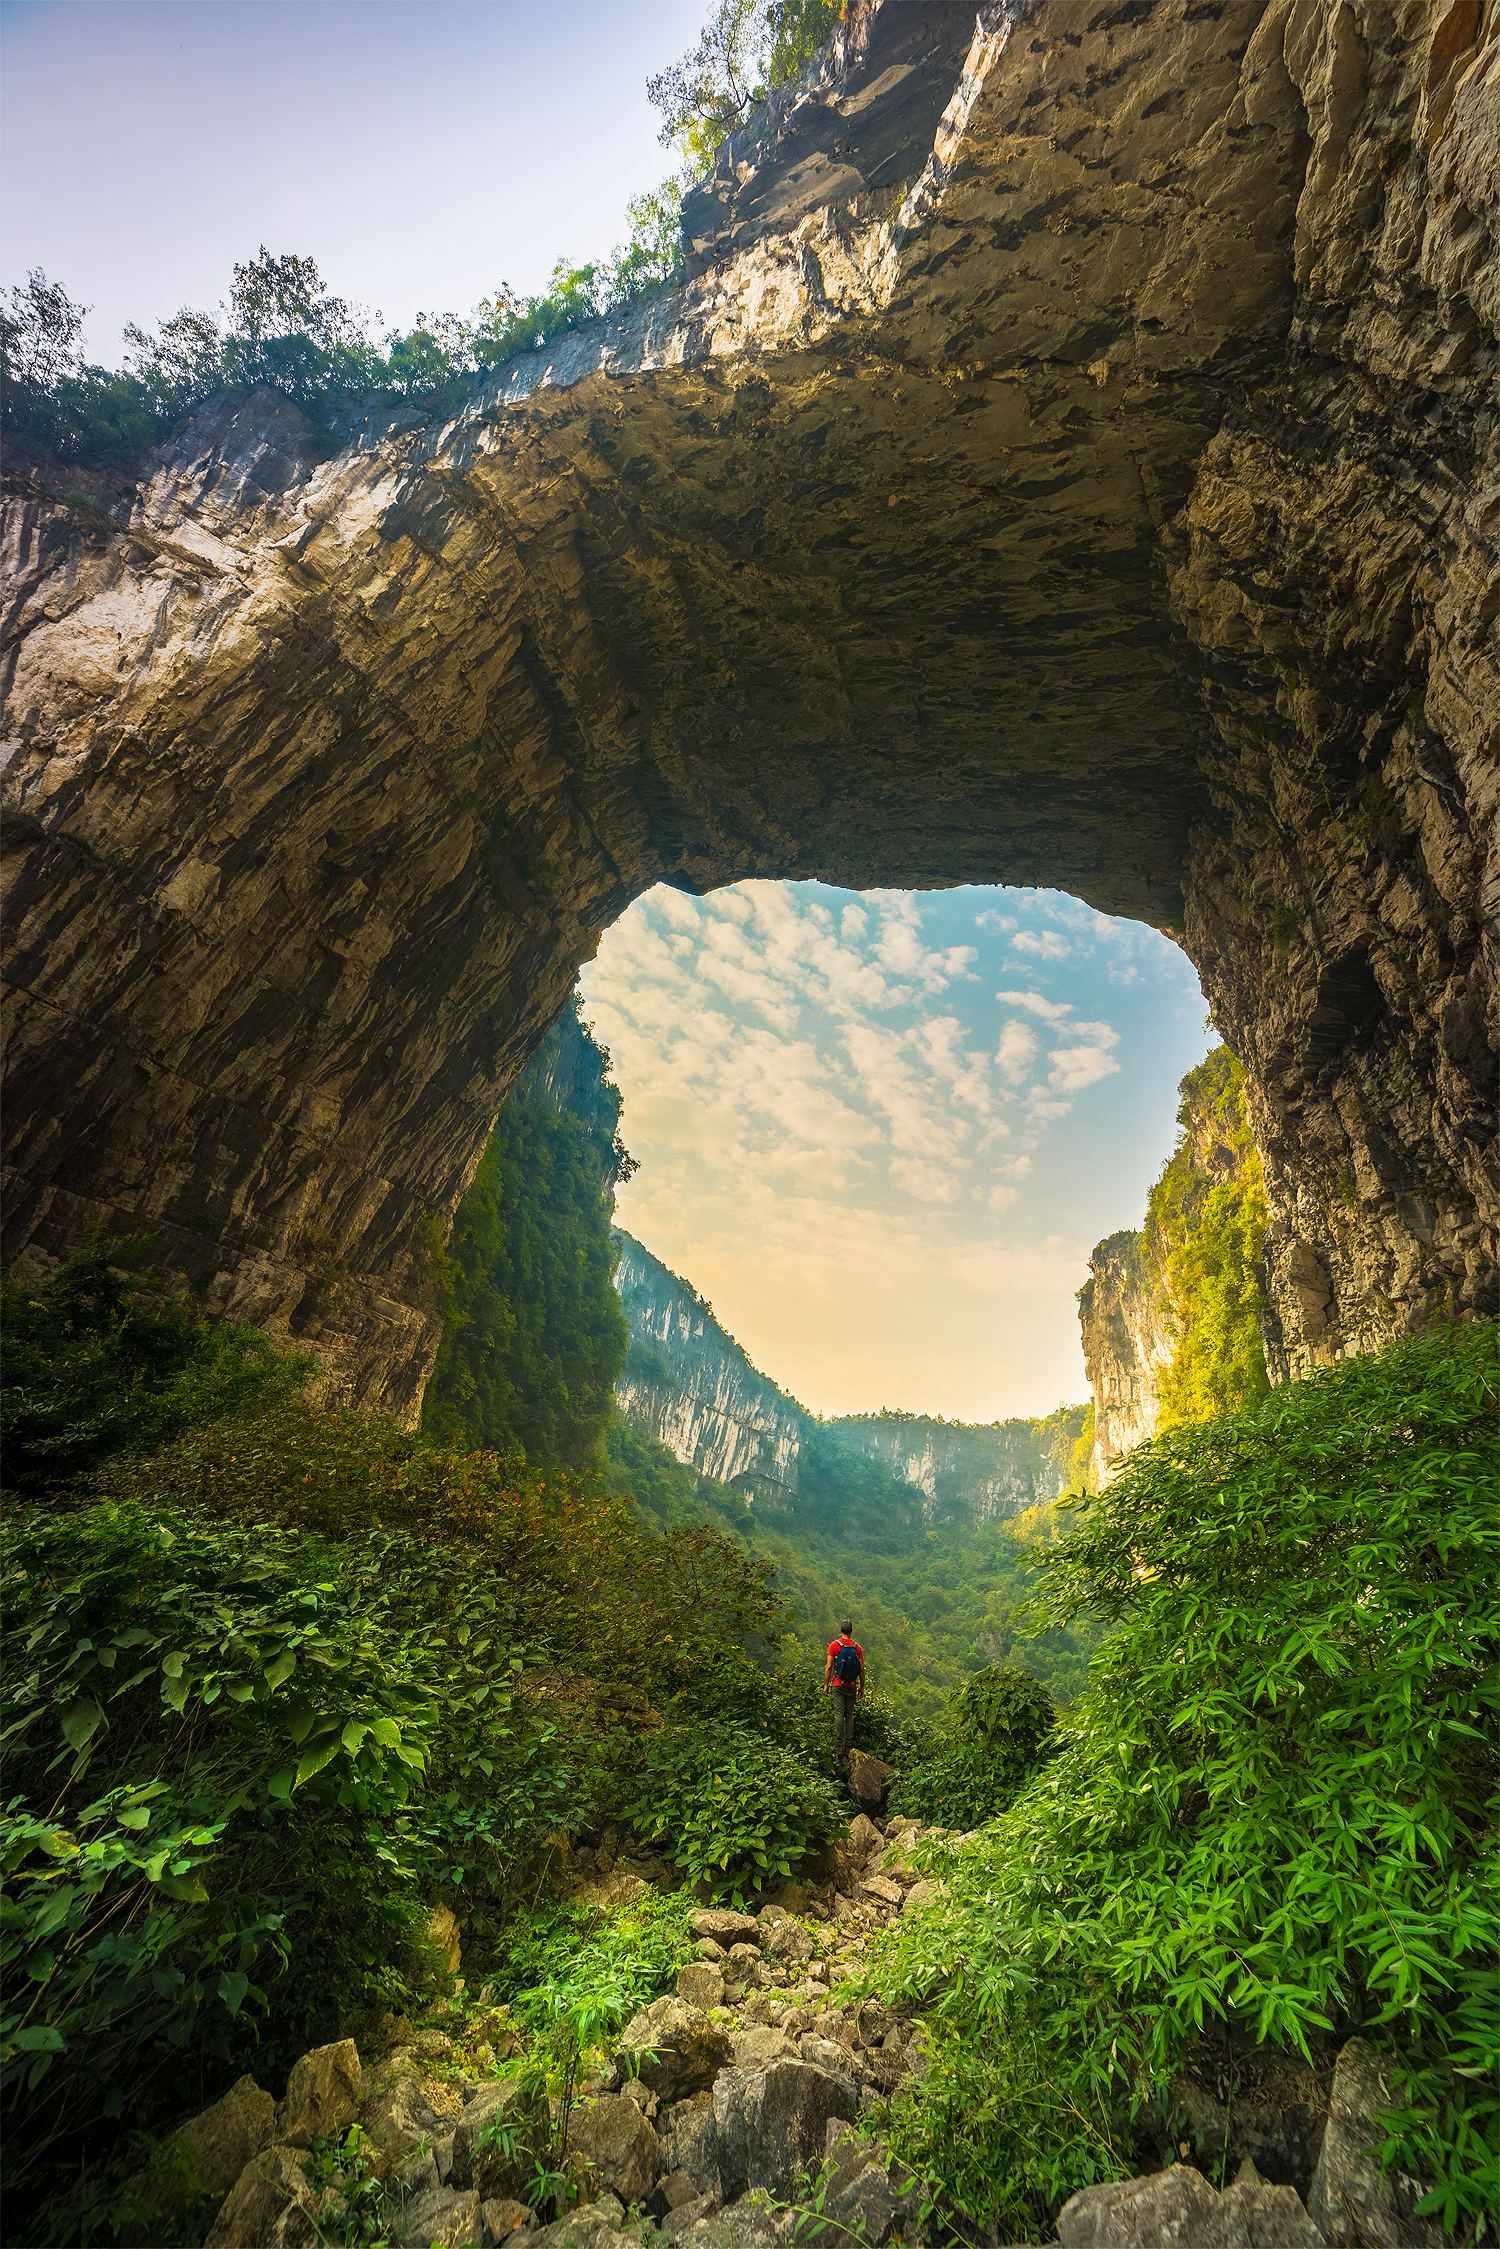 China Reiseblog: Betel Nut Cave / Angels Wall © PhotoTravelNomads.com